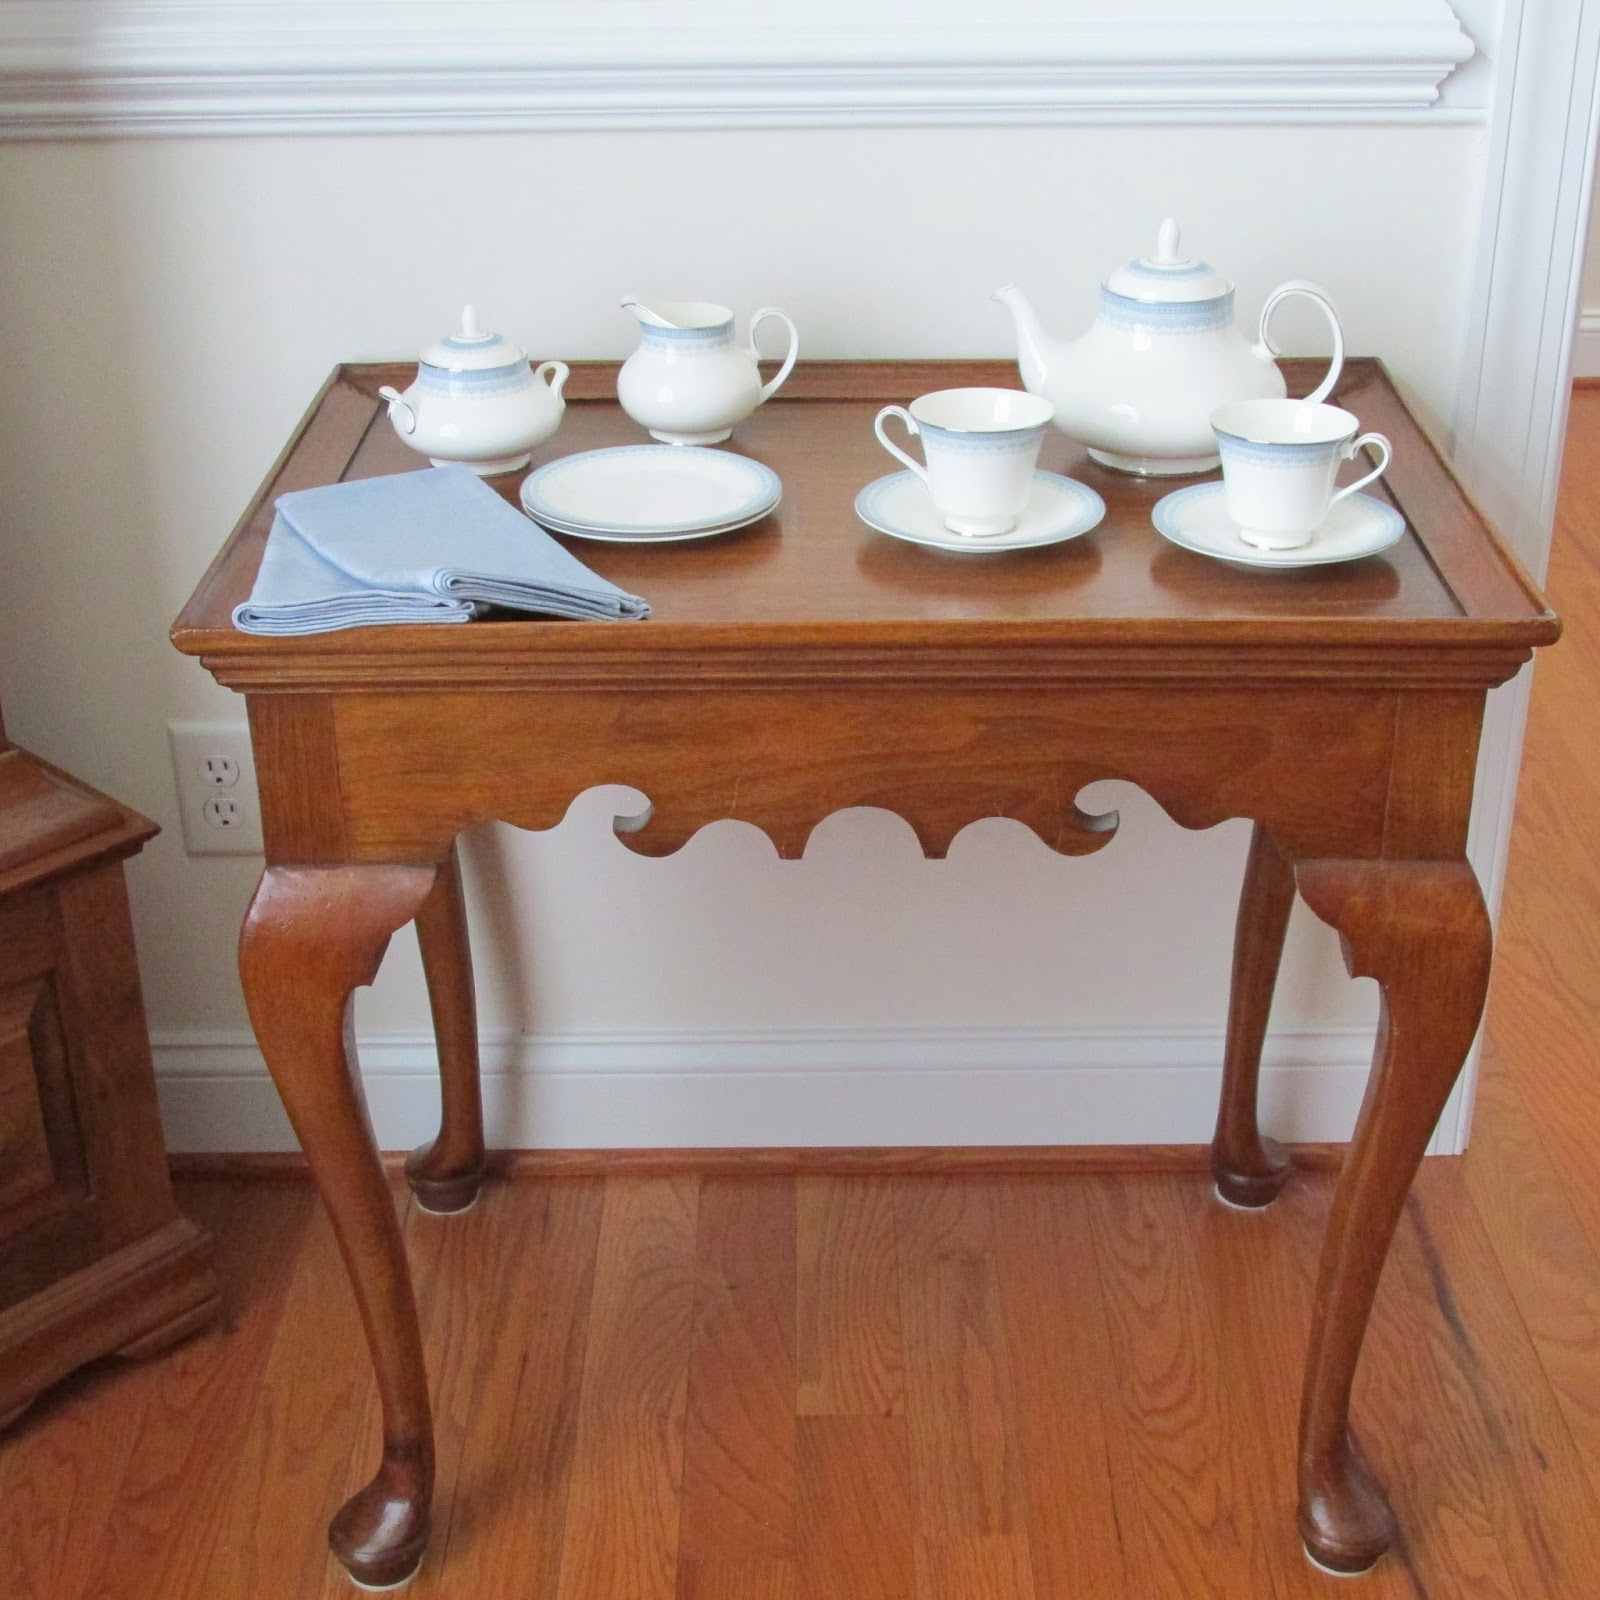 Delightful The Original Tea Table Had Been Made In The Last Quarter Of The 1700s For A  Wealthy Client In The Philadelphia Area. Although Furniture Made From  Mahogany ...